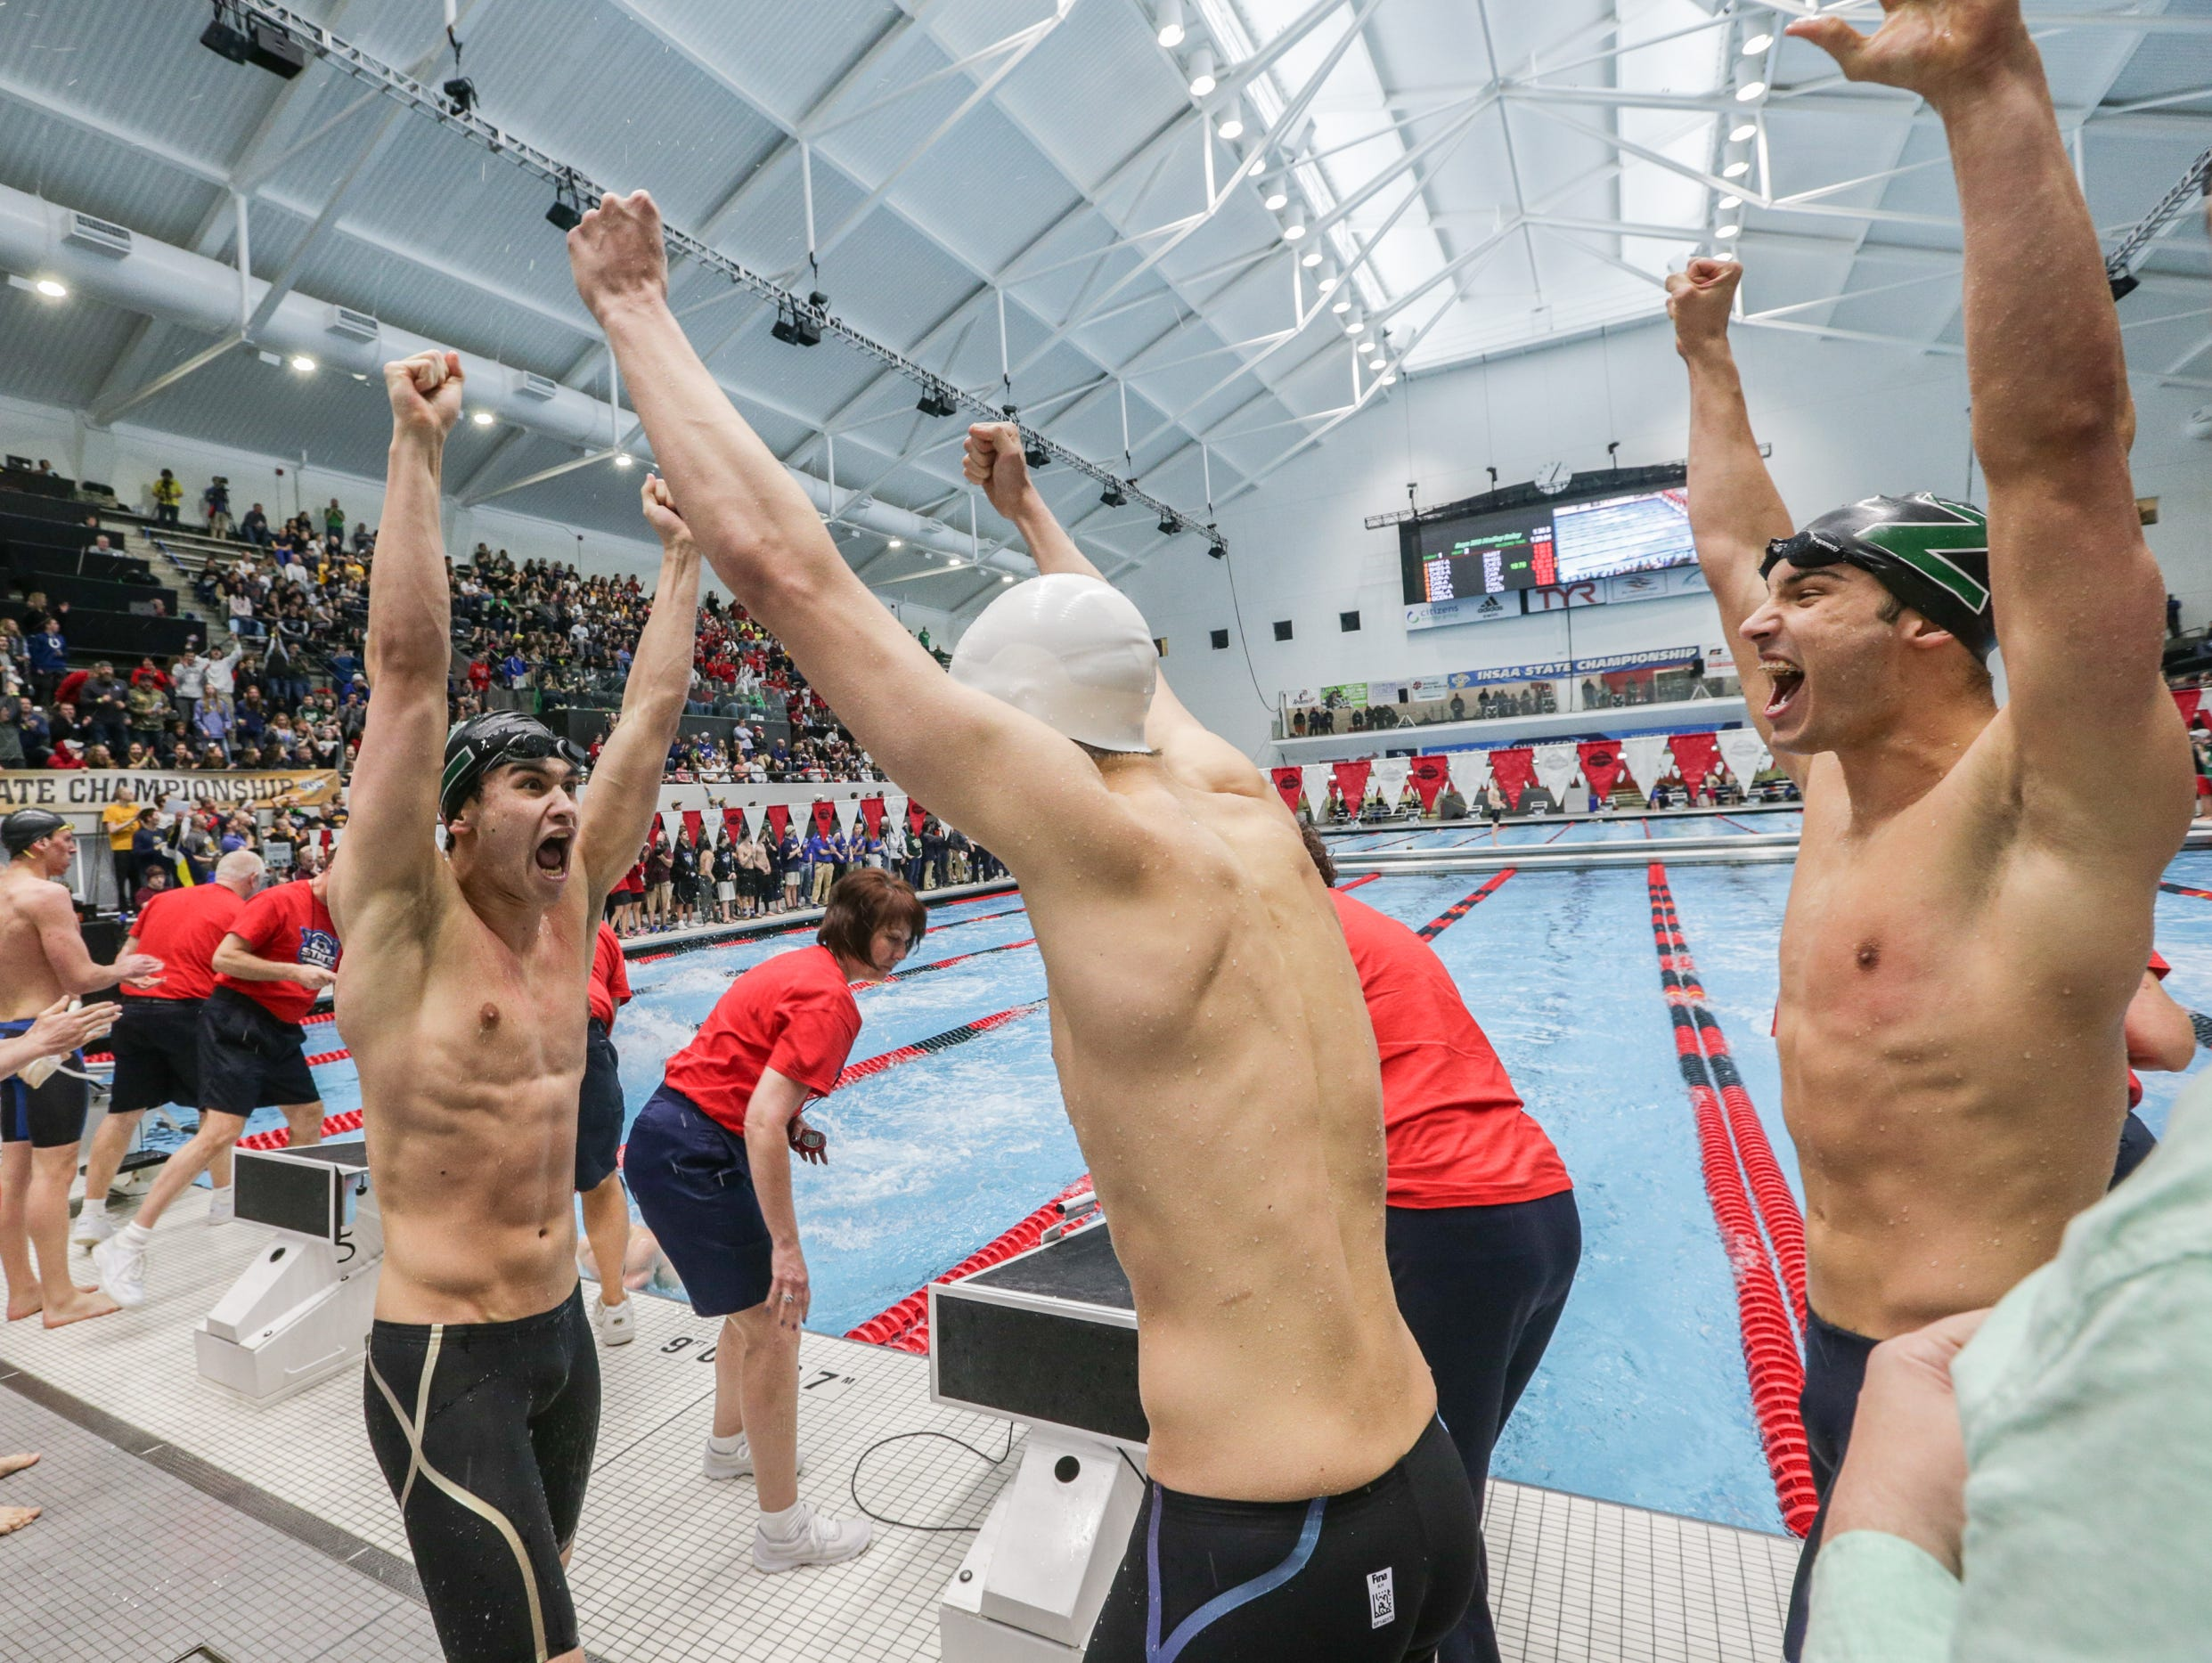 Zionsville's 200 yard medley team celebrates a win during the 2017 IHSAA High School Boys Swimming and Diving State Finals, held at the IUPUI Natatorium, Feb. 25, 2017.